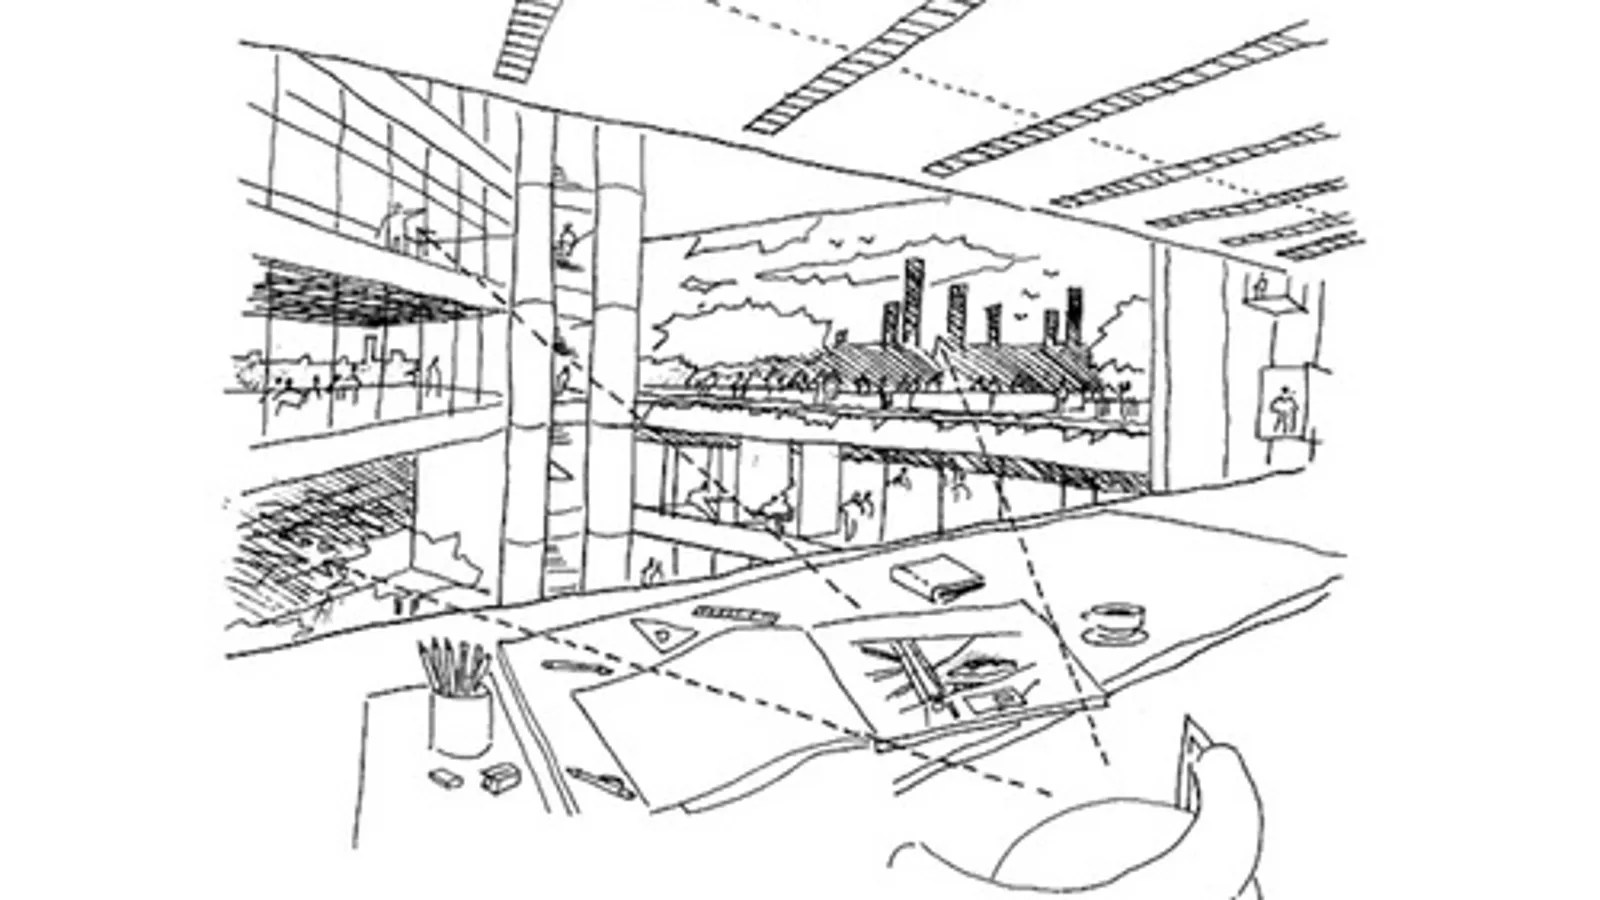 Inside the Mind of Norman Foster